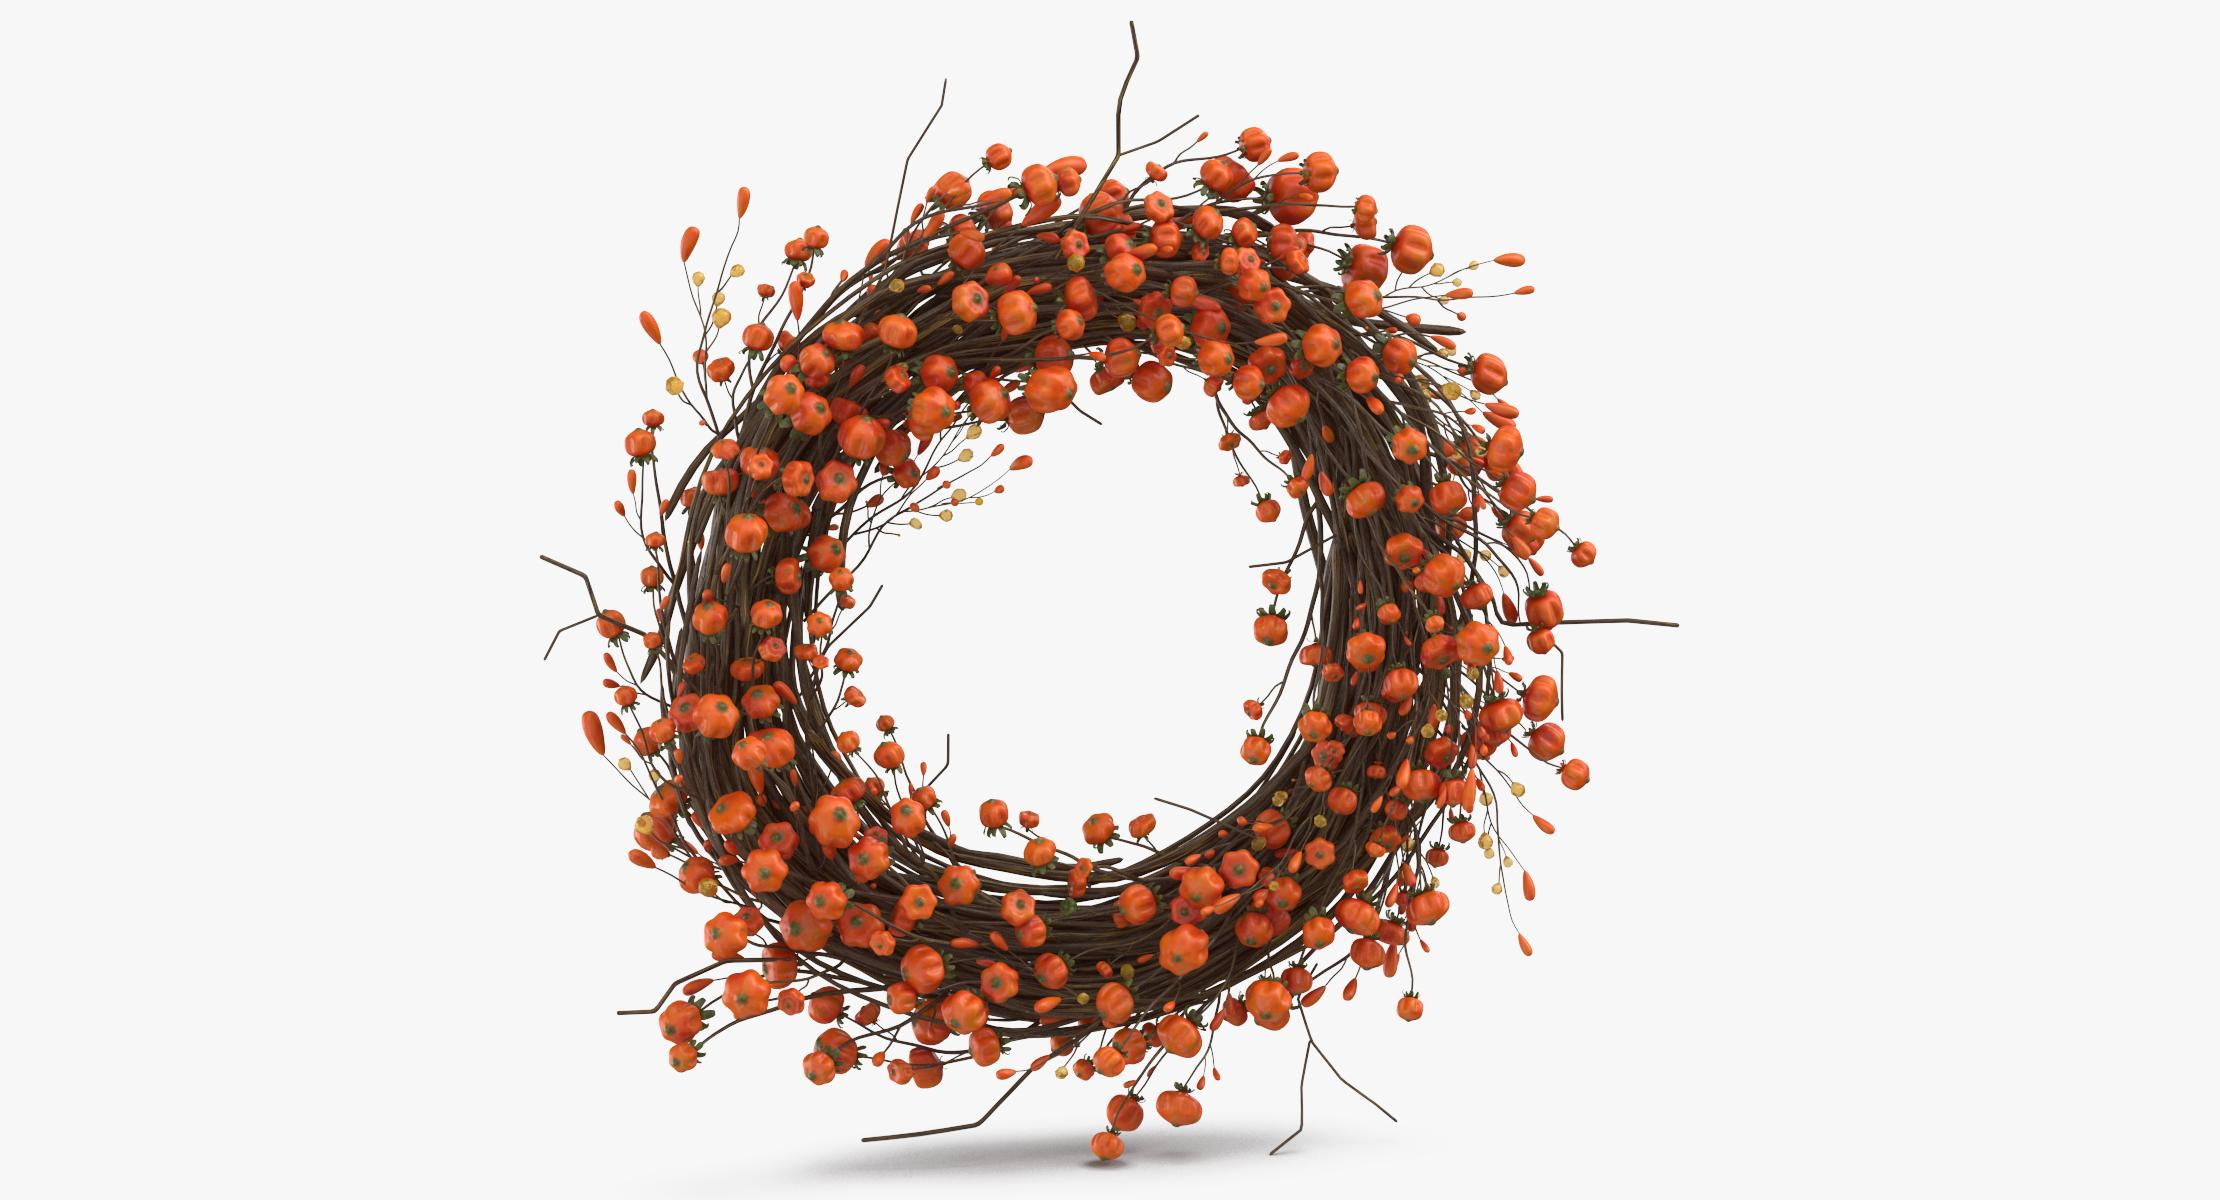 Autumn Wreath 01 - reel 1